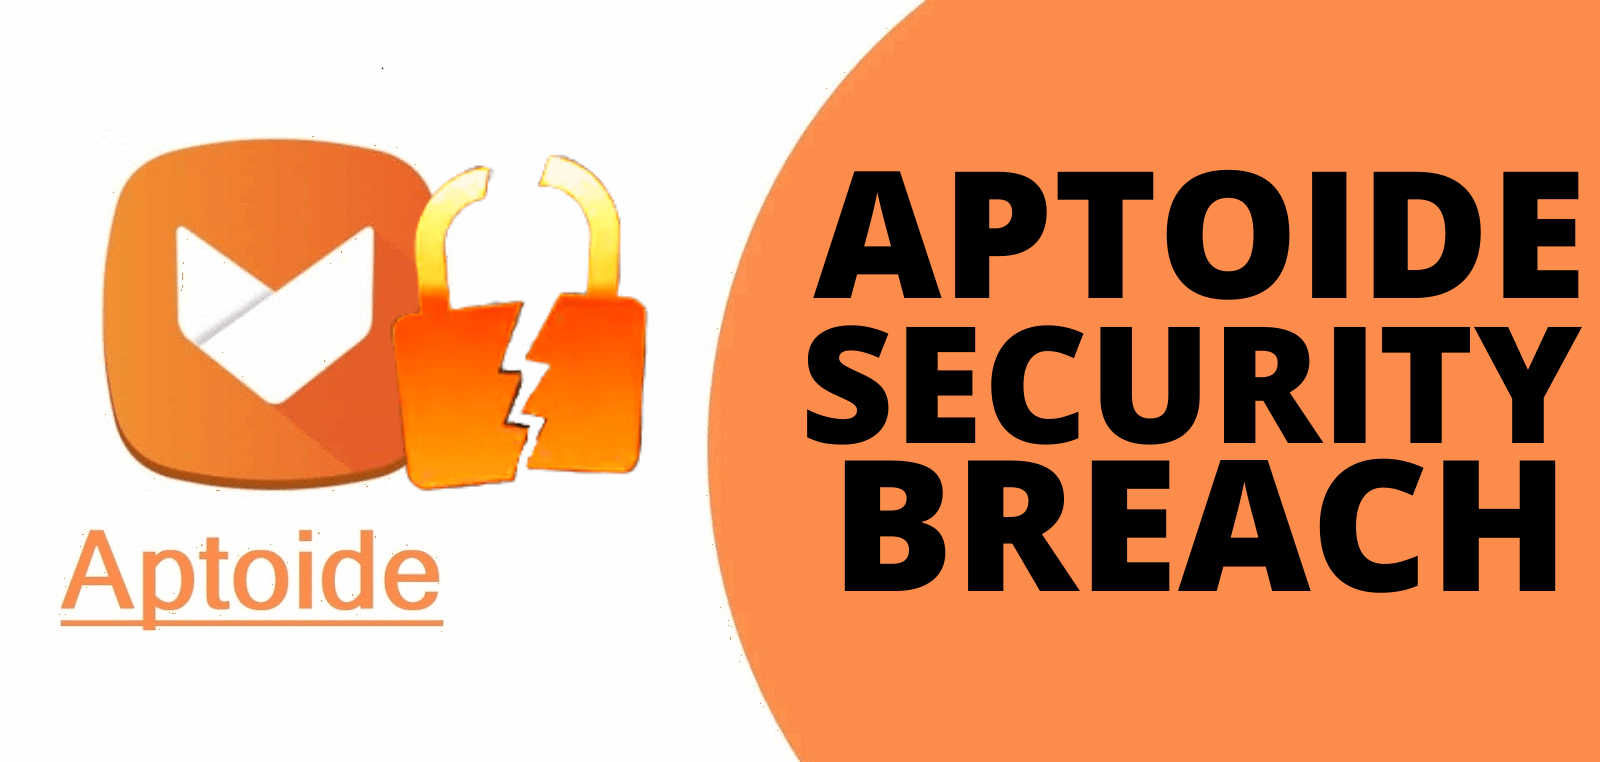 Aptoide Security Breach